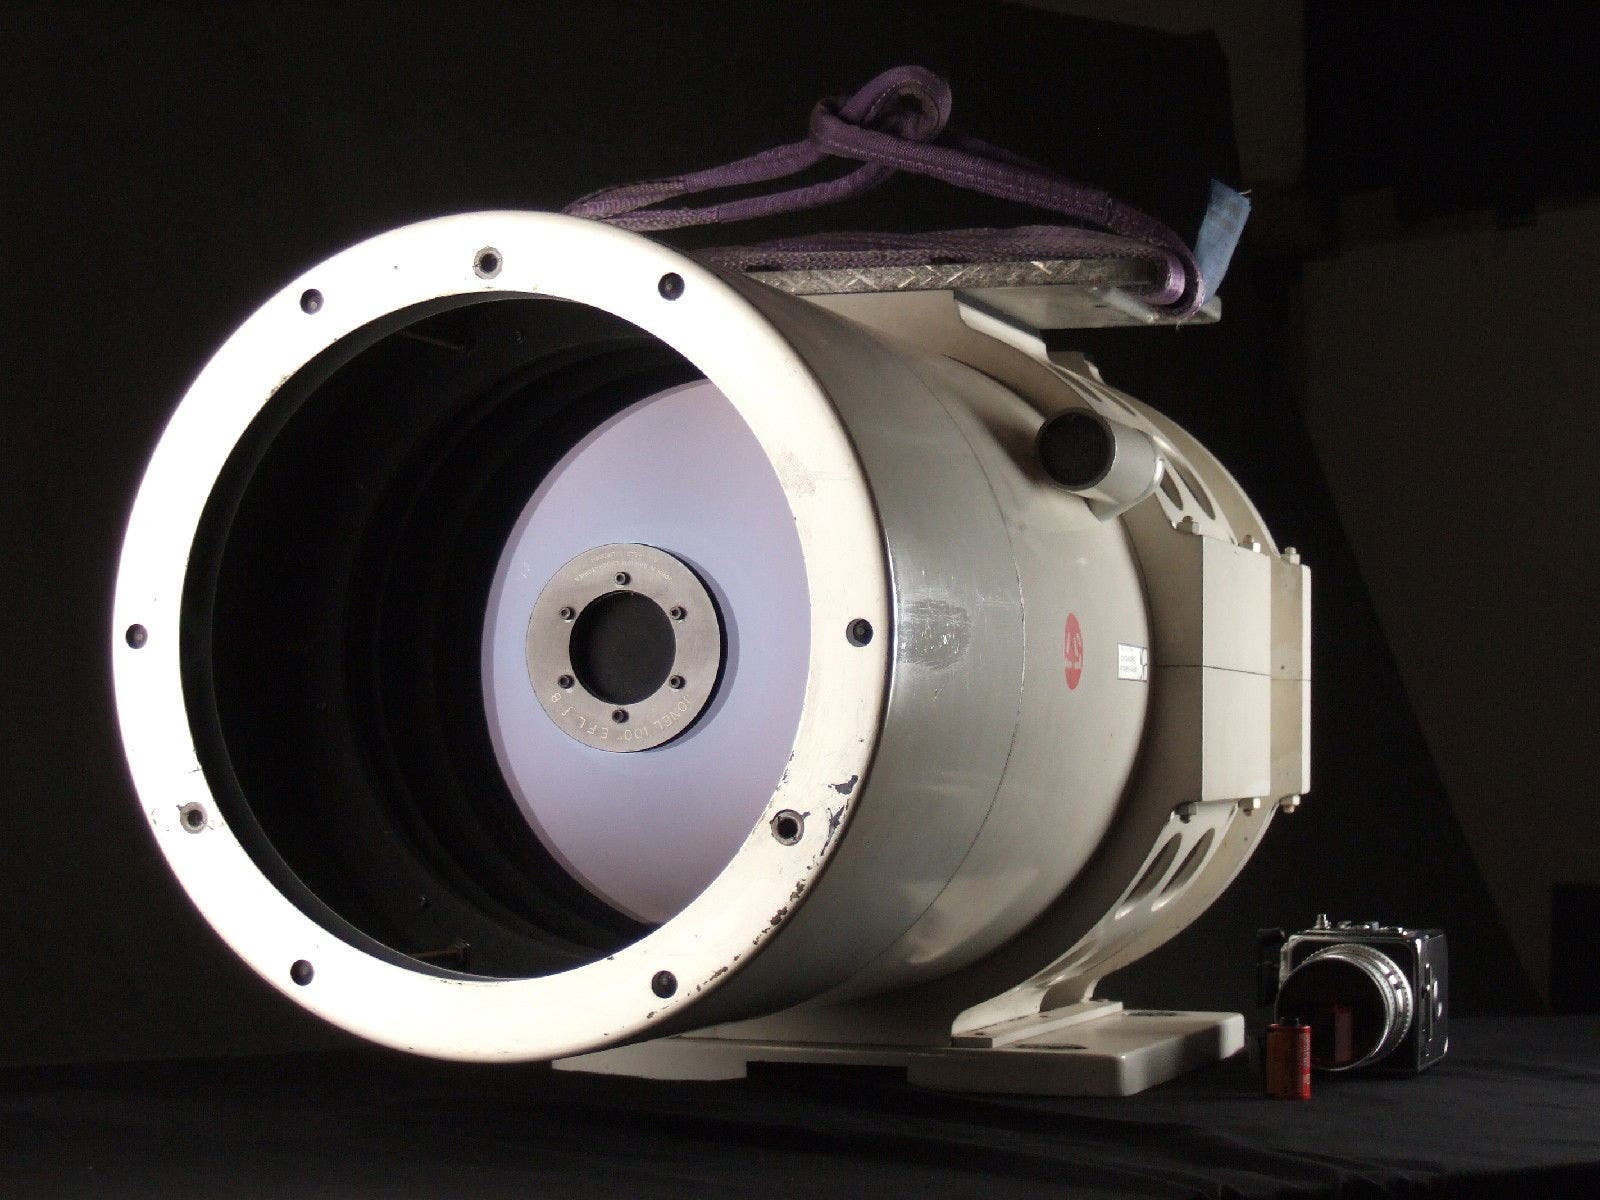 This 2540mm f8 Mirror Lens Used by NASA Now Costs $28,000